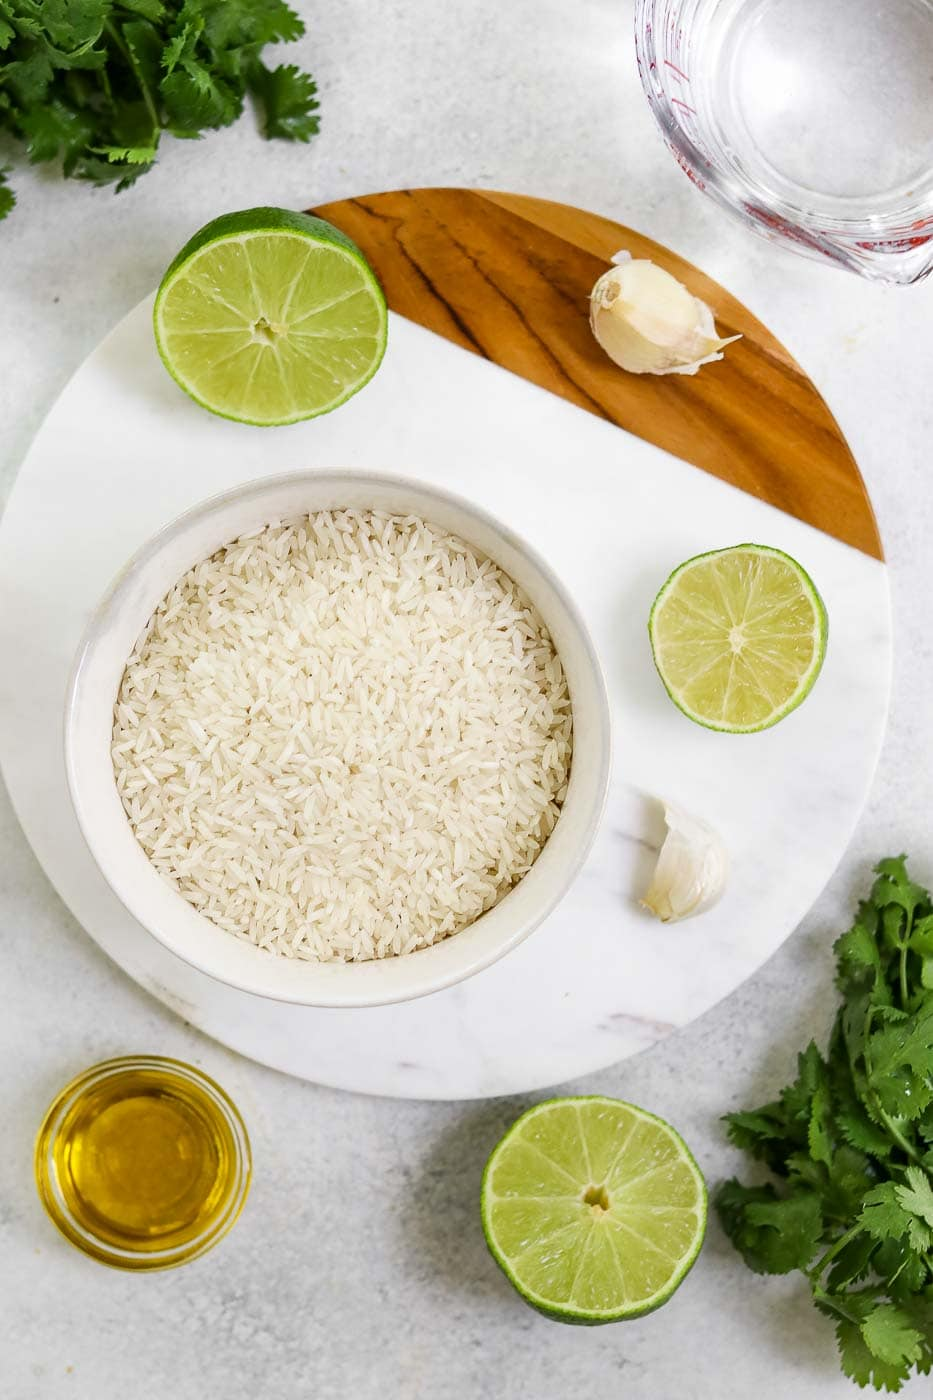 Ingredients for the cilantro lime rice recipe.